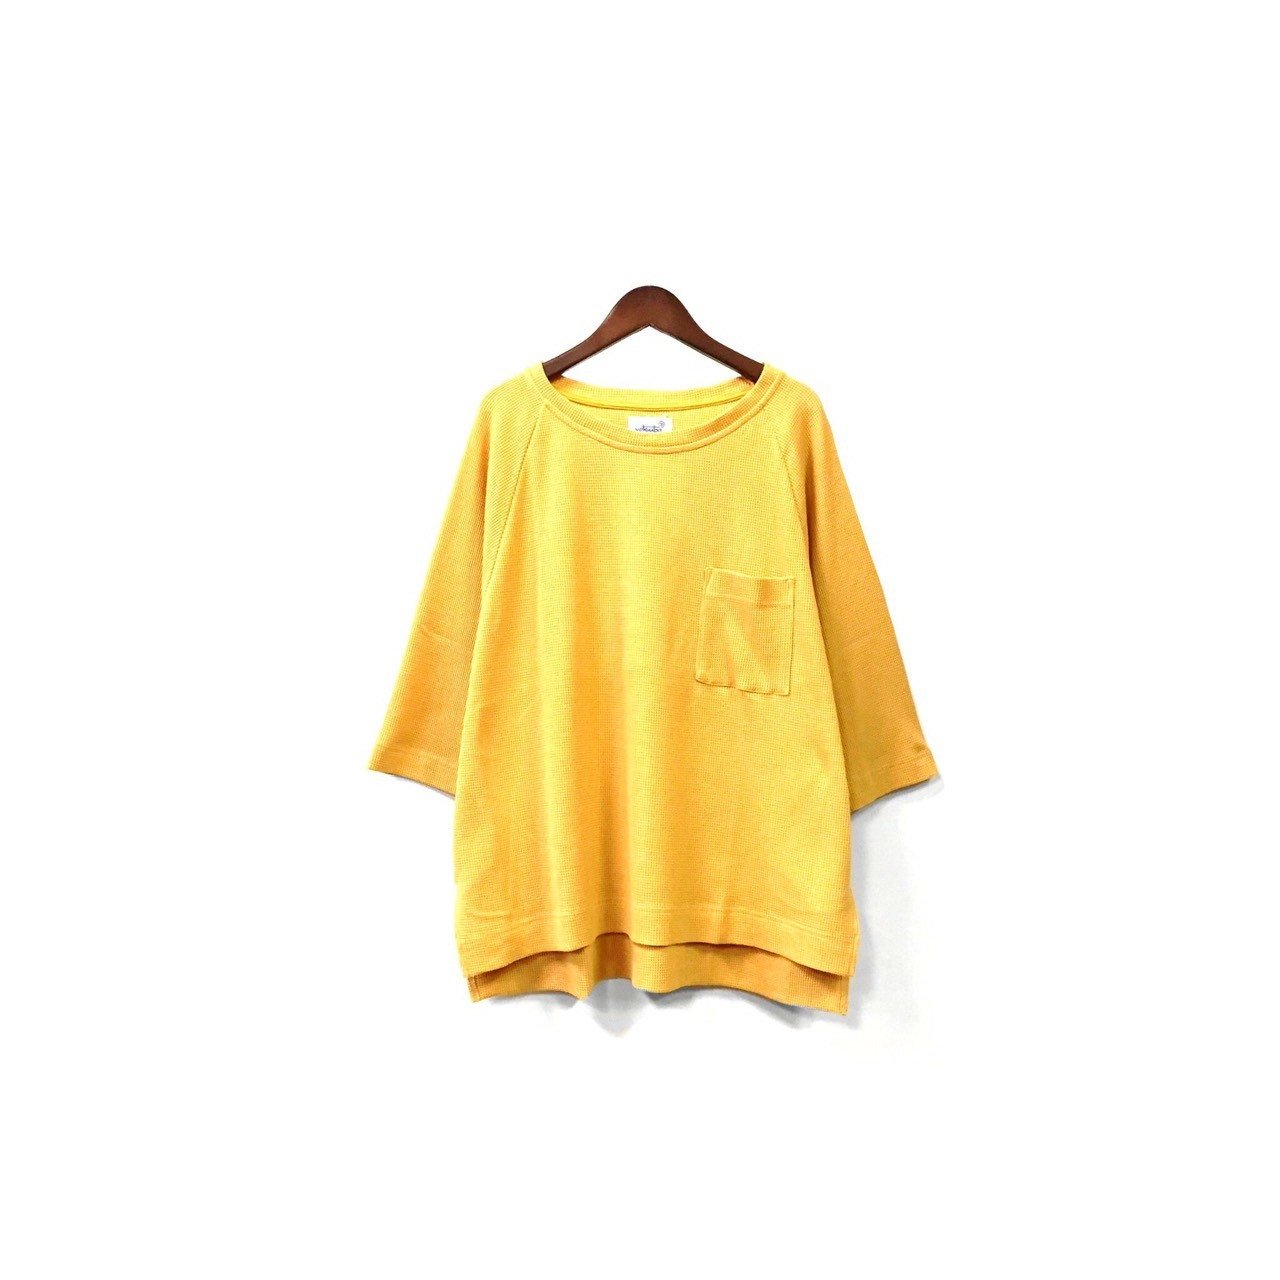 yotsuba - Thermal Tops / Yellow ¥11000+tax